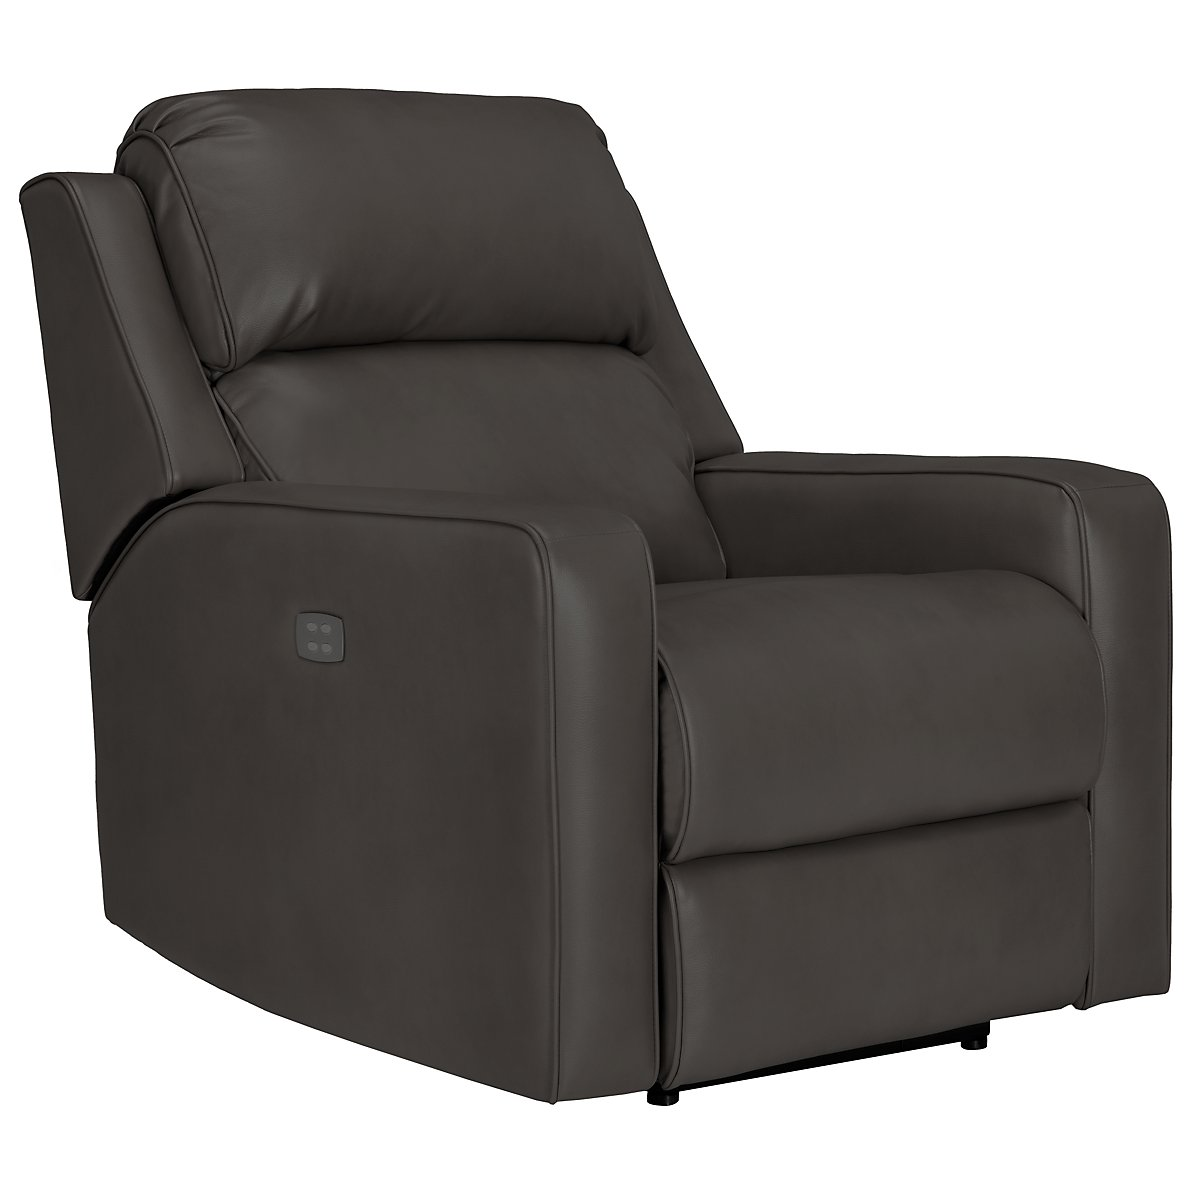 Rocco Gray Microfiber Power Recliner